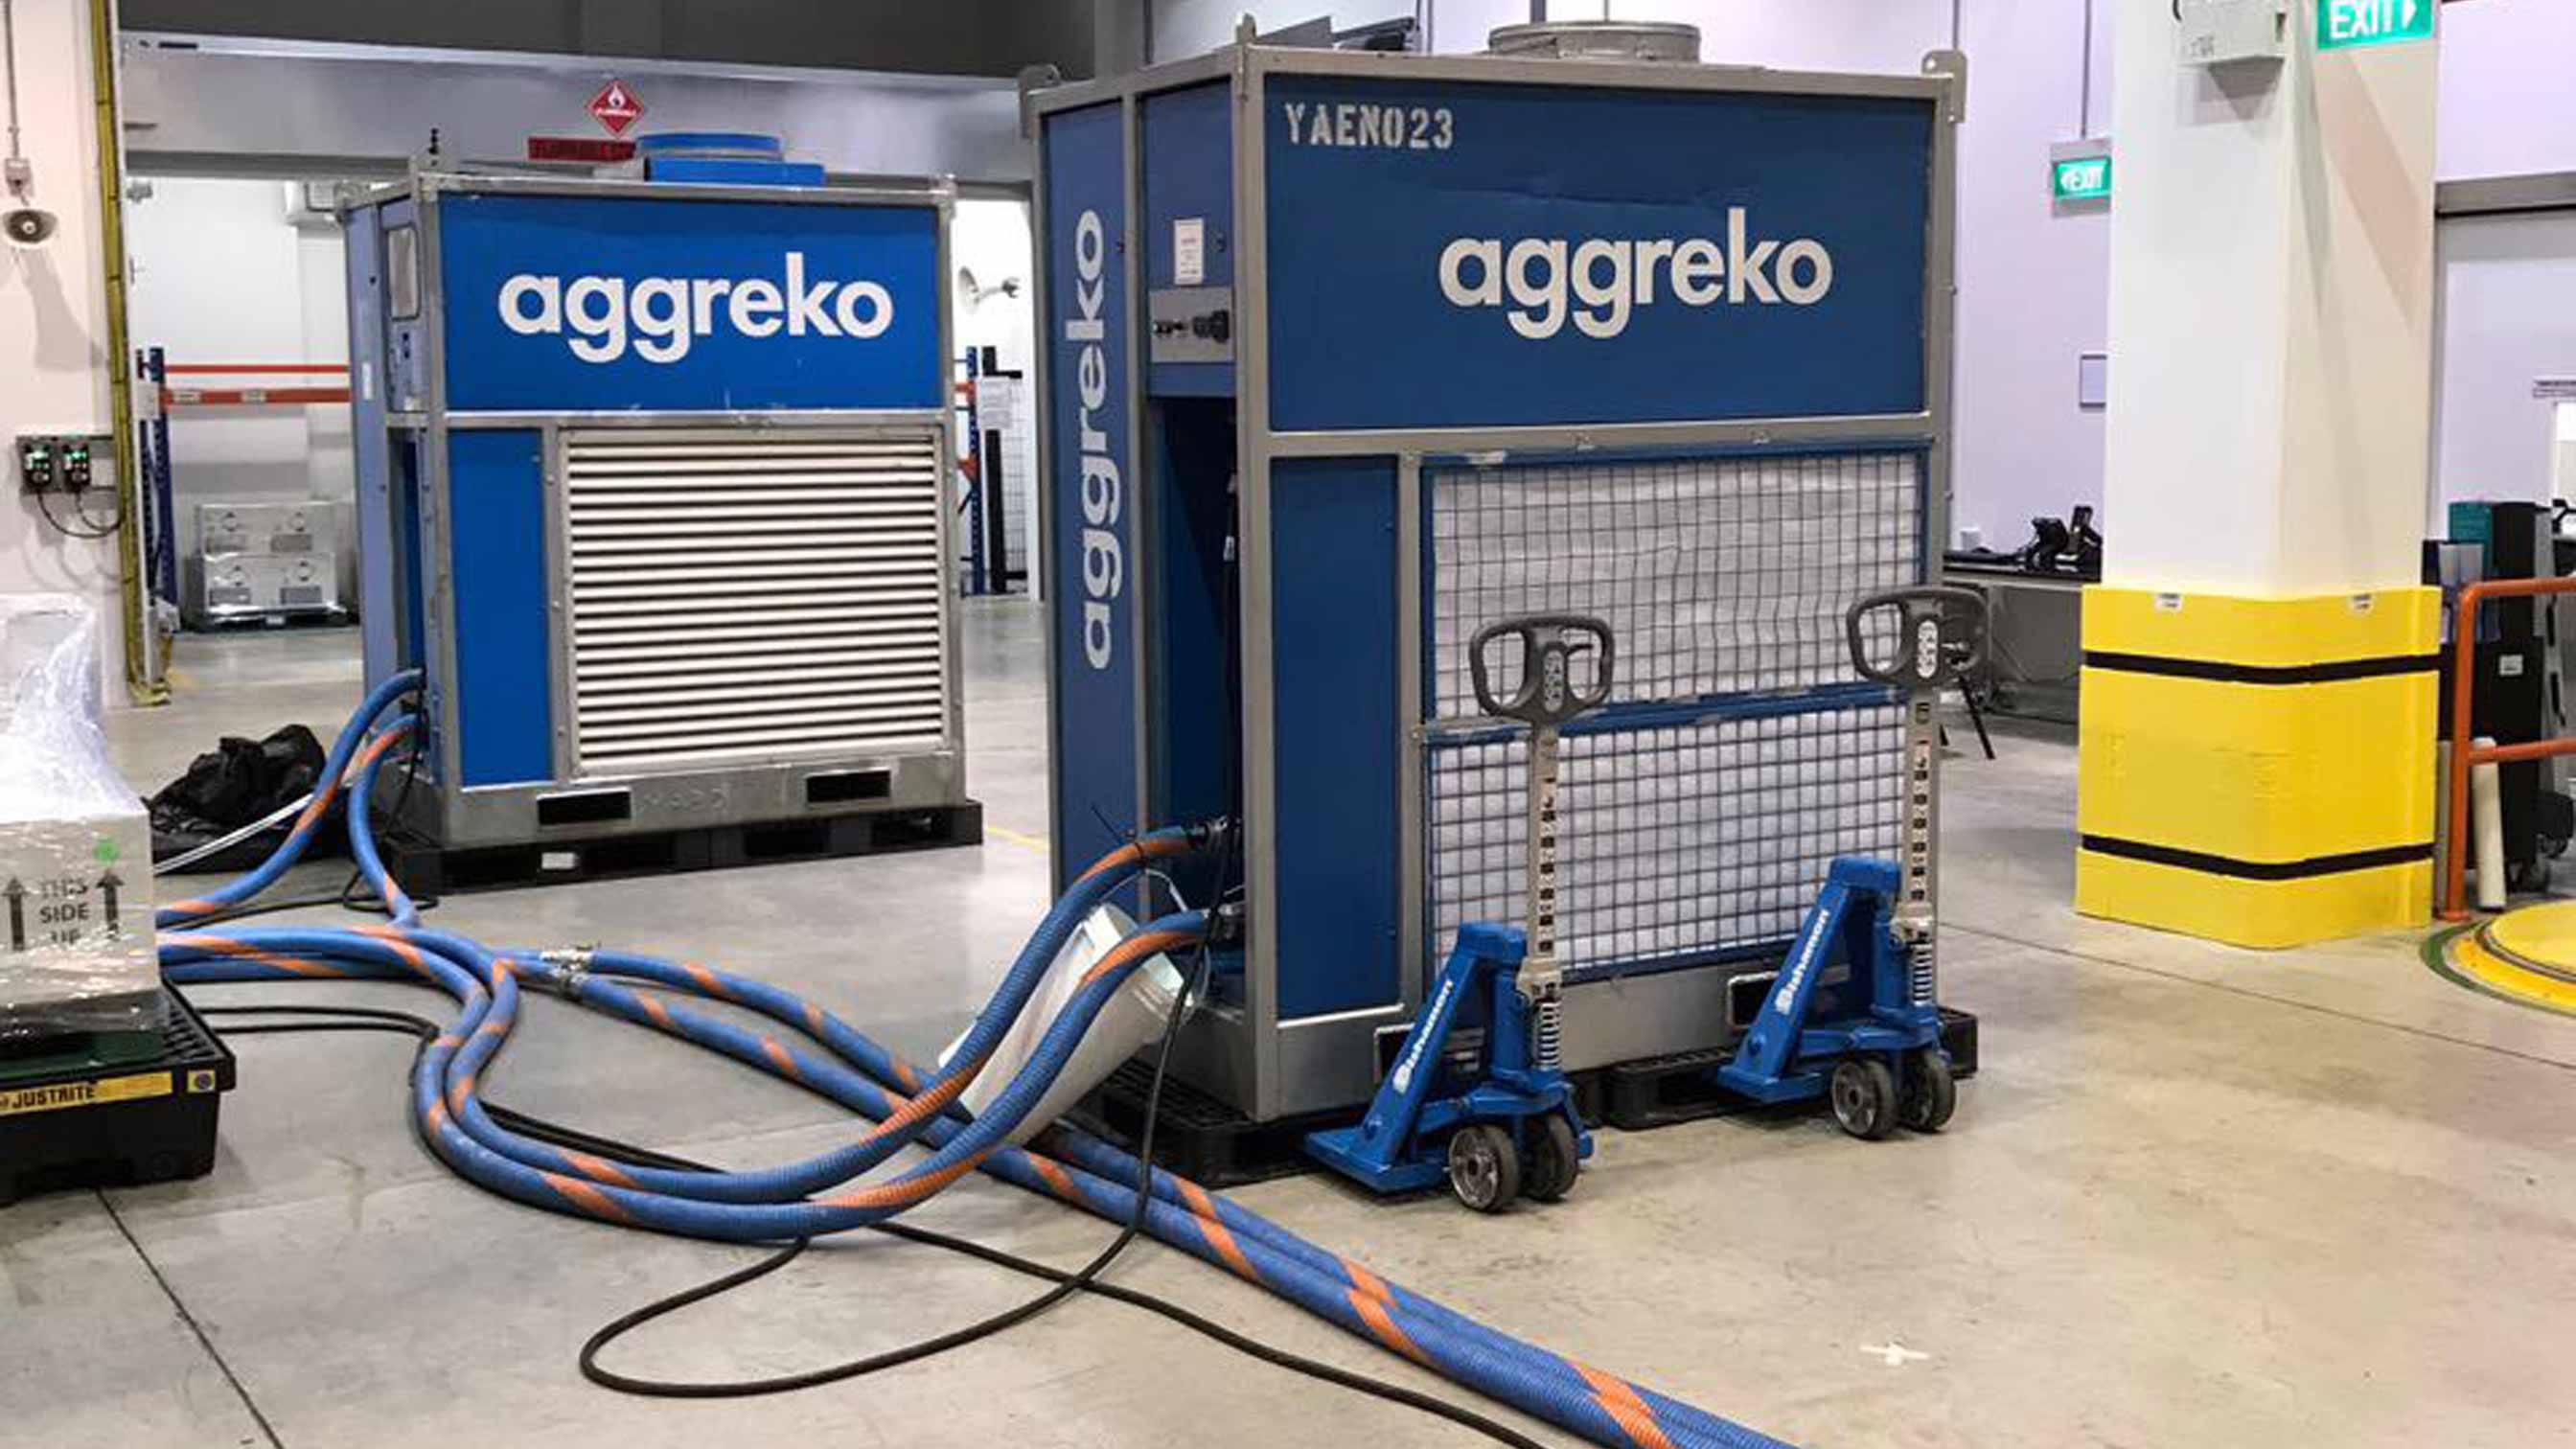 Aggreko equipment hooked up to cables